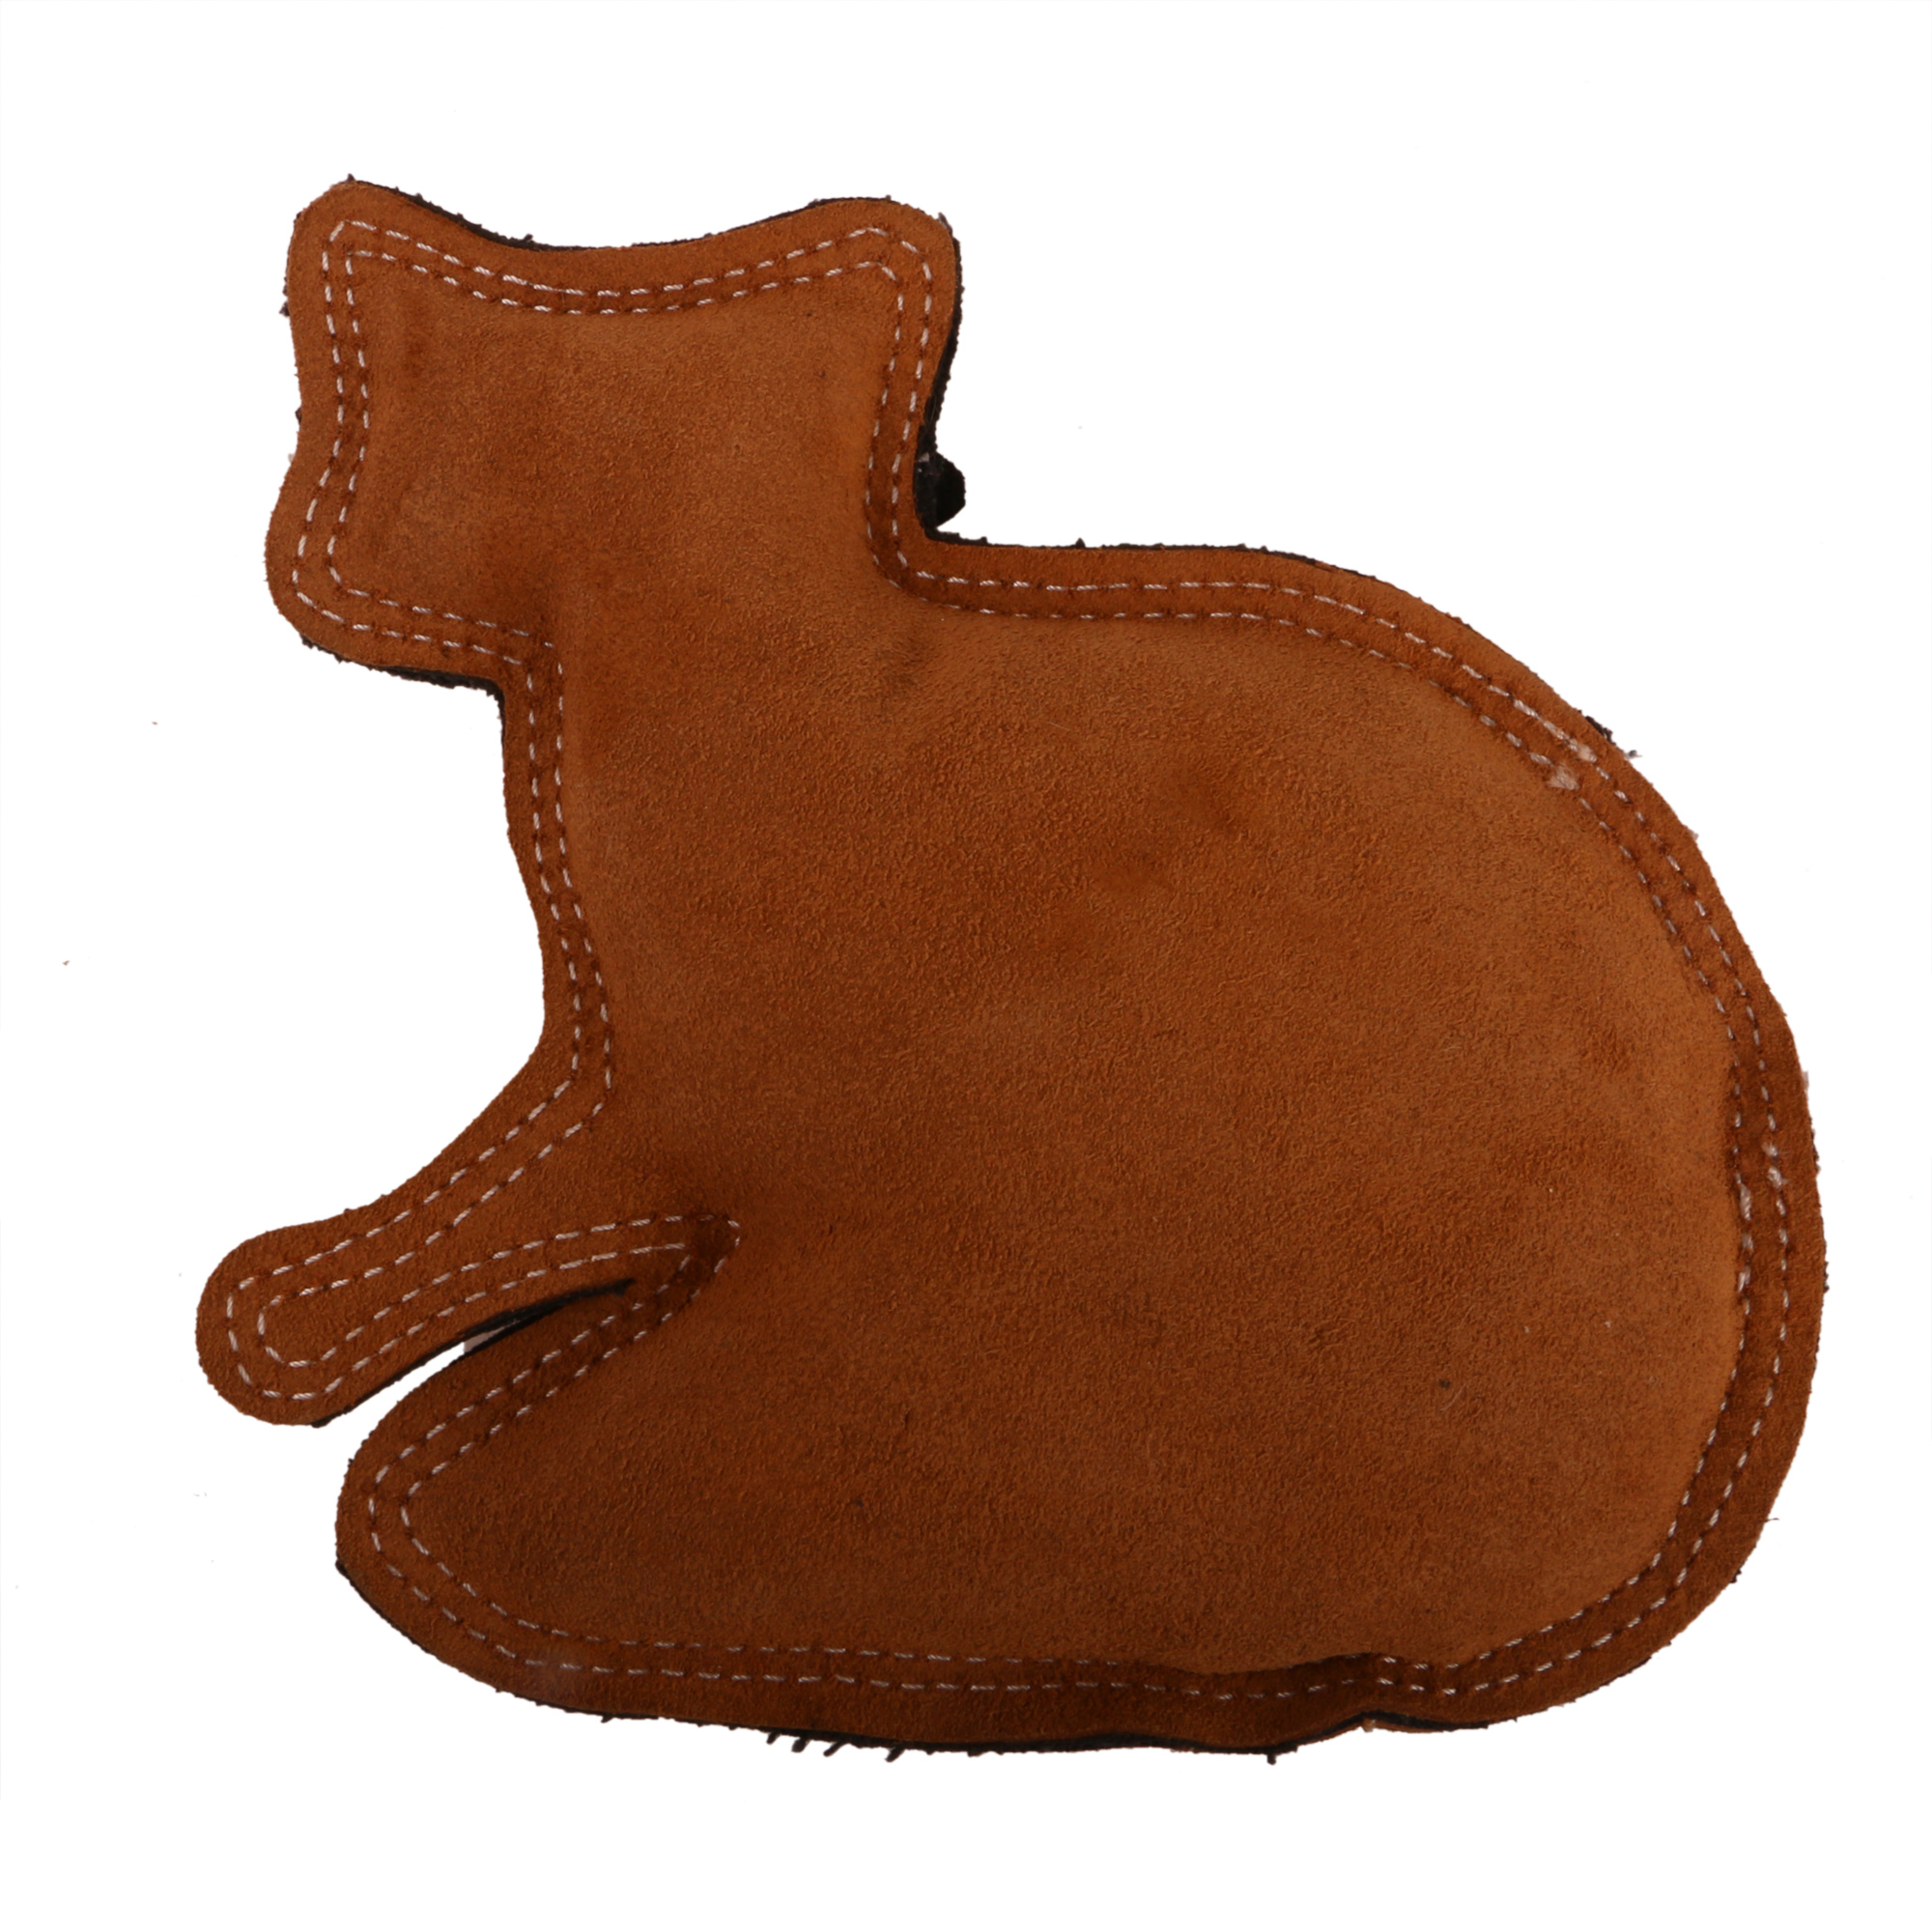 DogSpot Dura Fused Leather Racoon Dog Toy